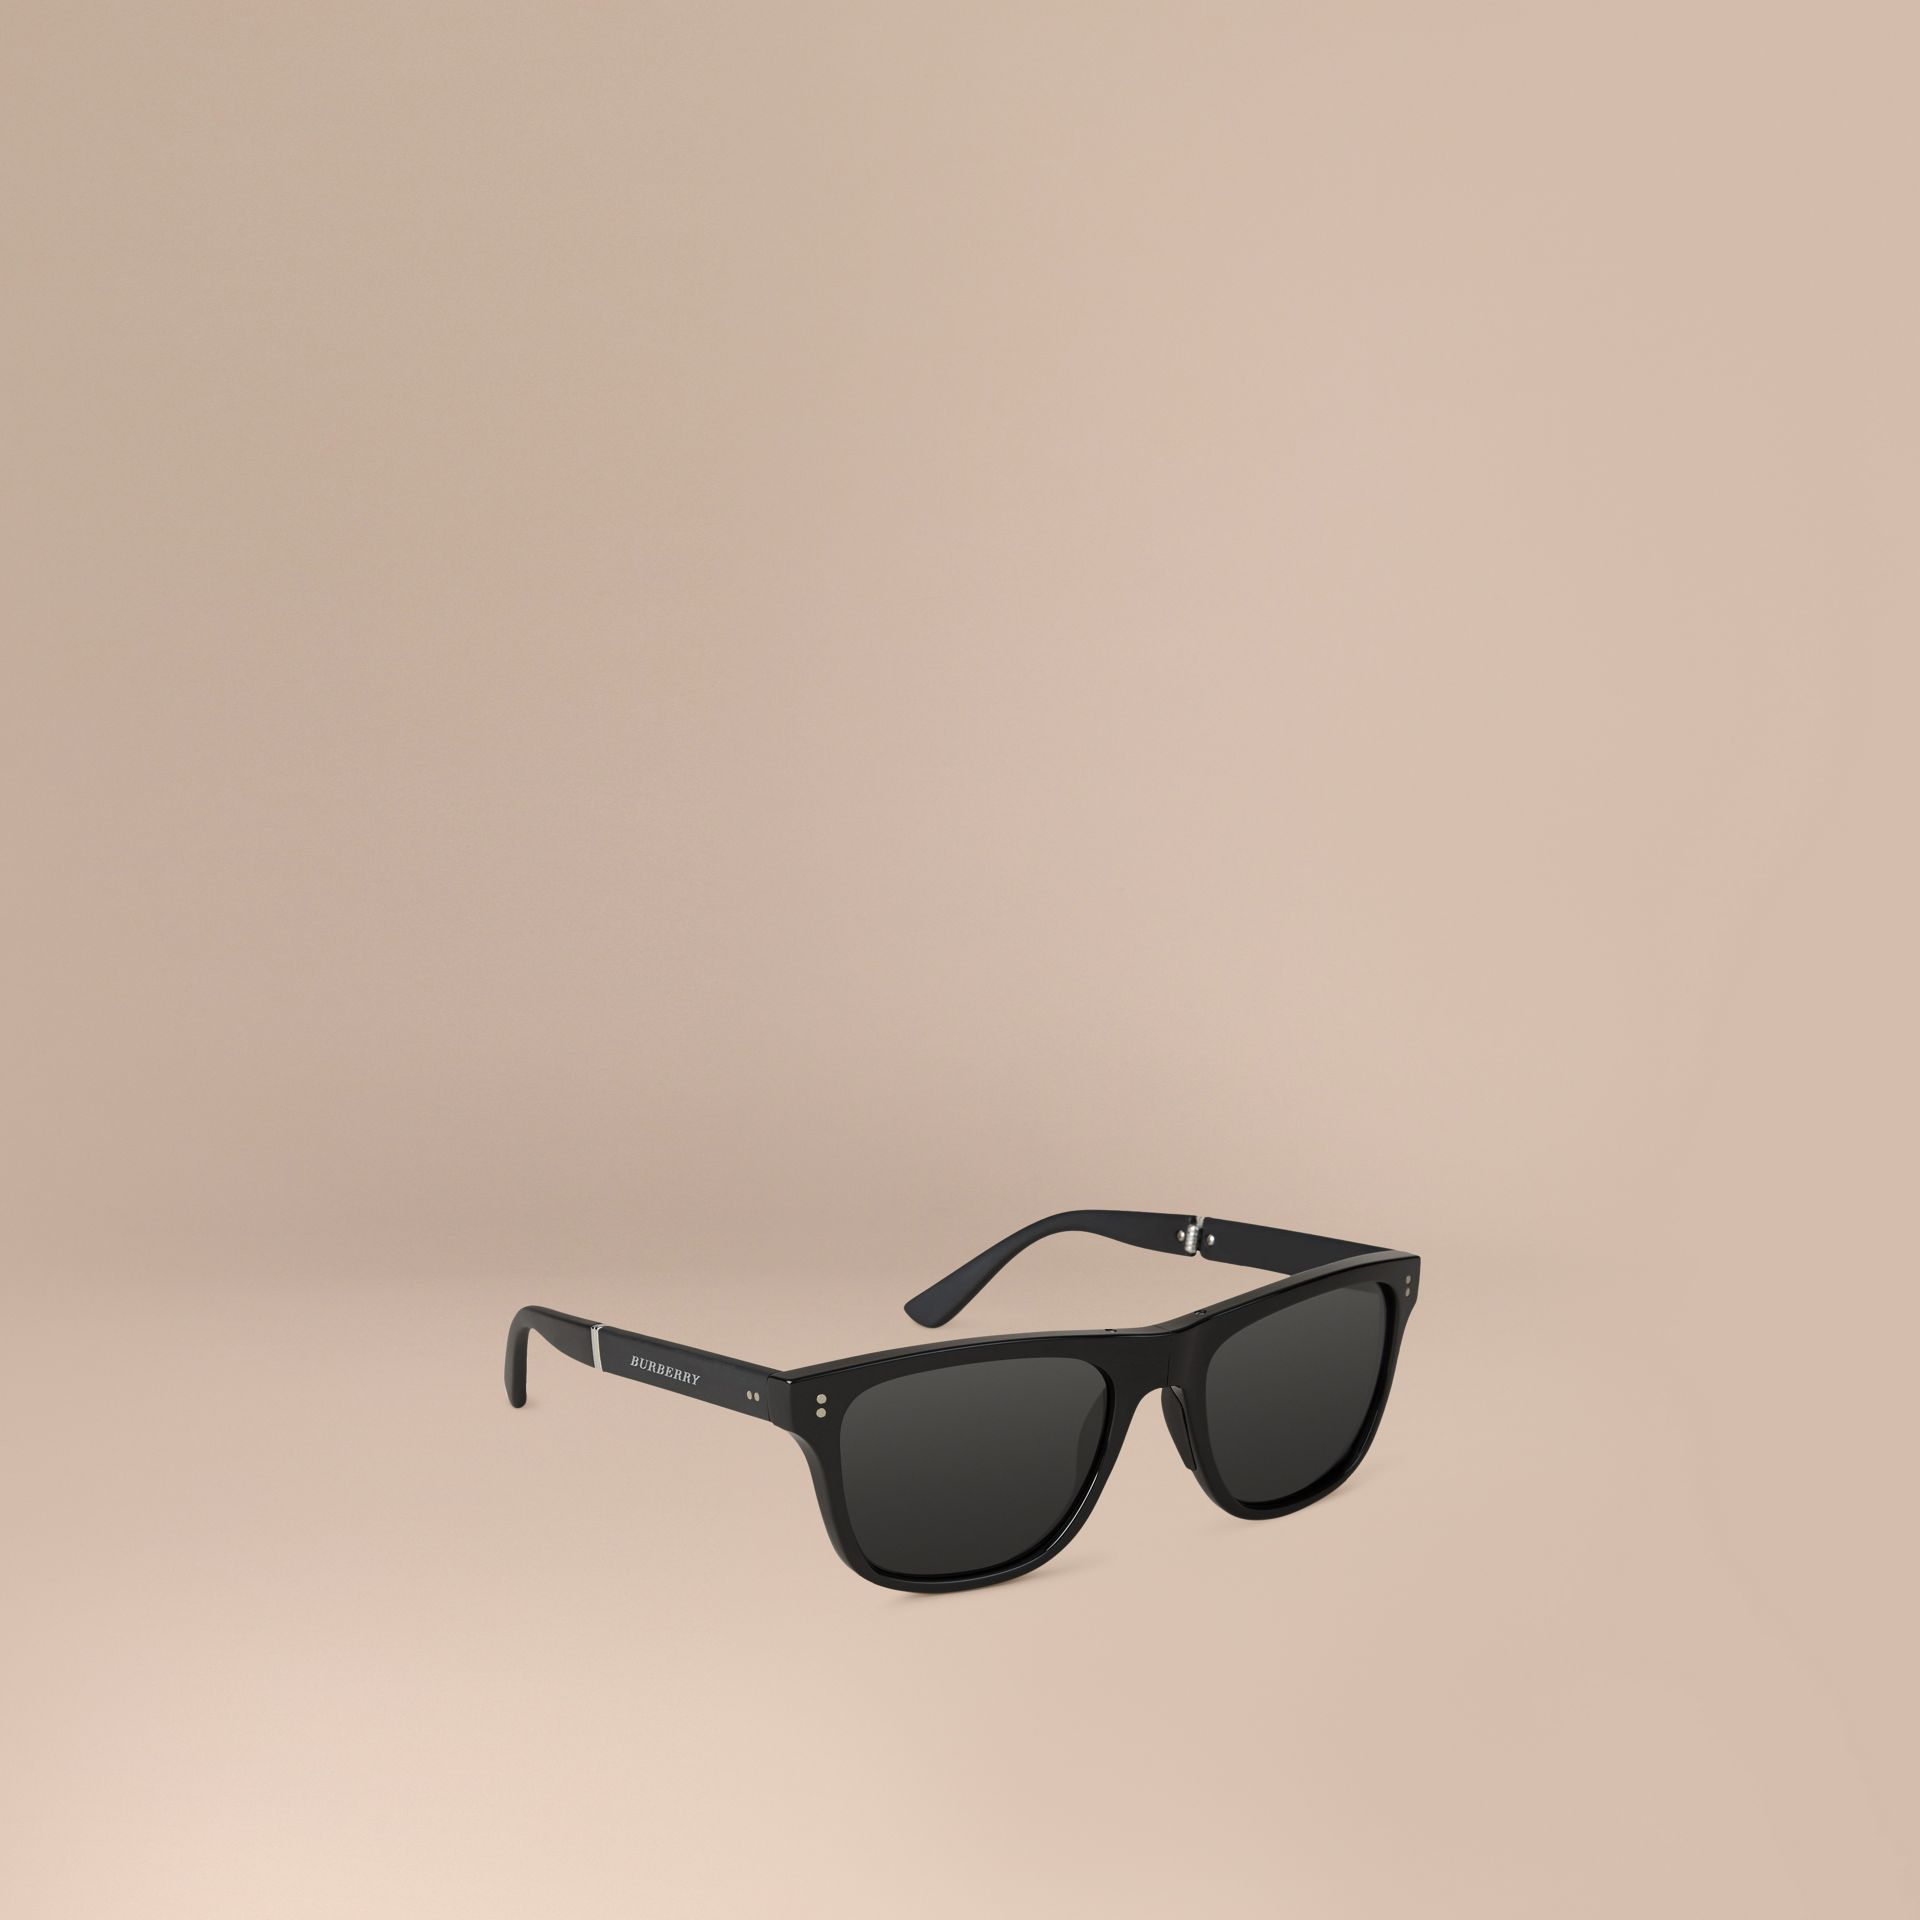 Folding Rectangular Frame Sunglasses in Black - Men | Burberry Canada - gallery image 0